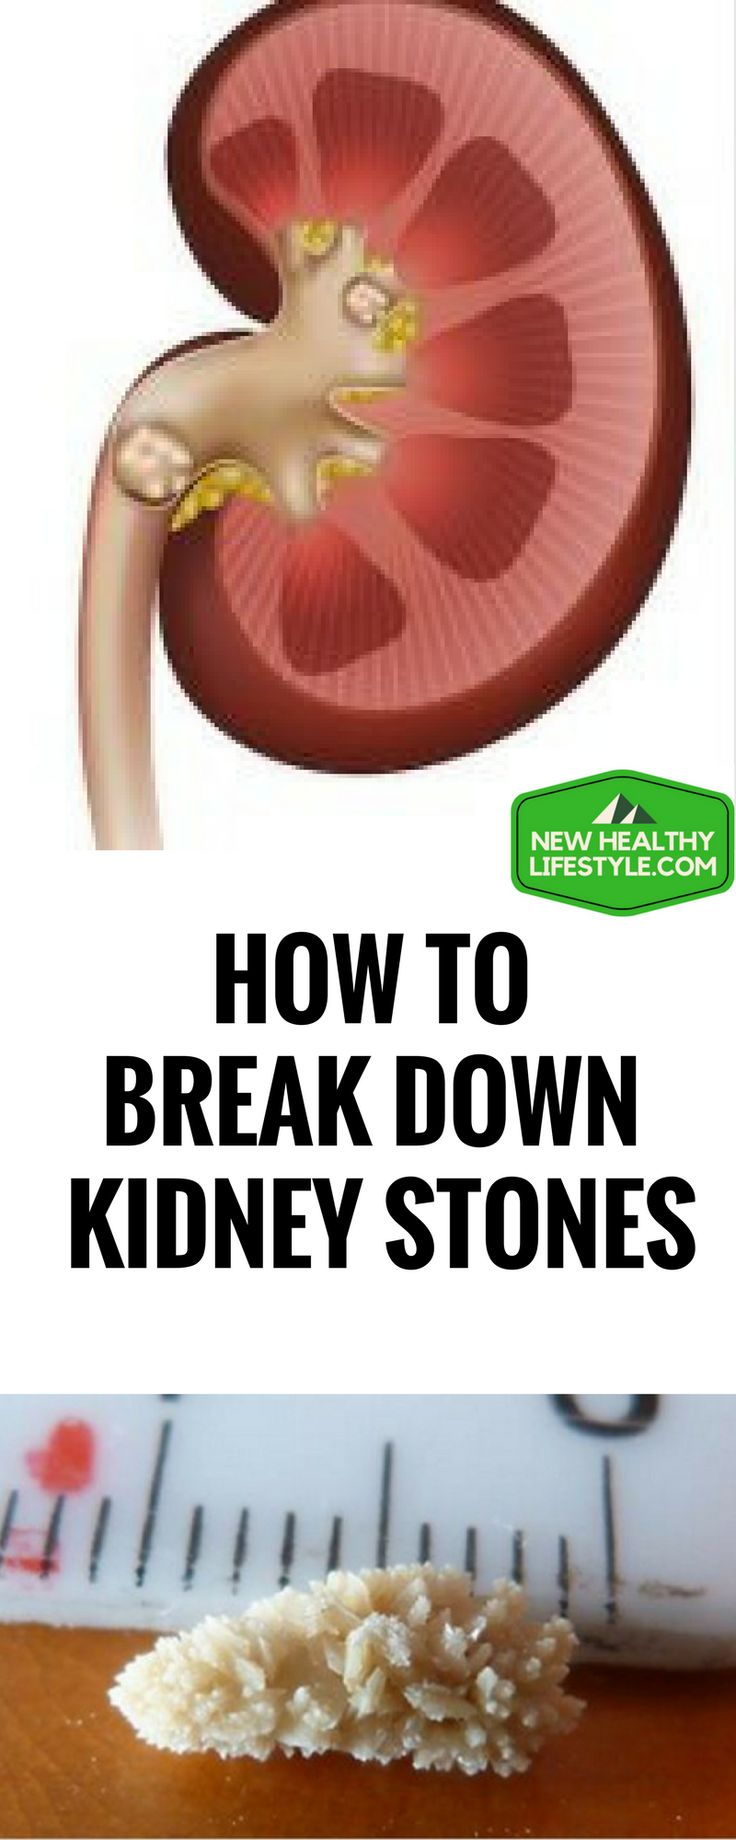 HOW TO BREAK DOWN KIDNEY STONES AND KILL BLADDER INFECTION WITH THIS ONE-INGREDIENT JUICE ``1